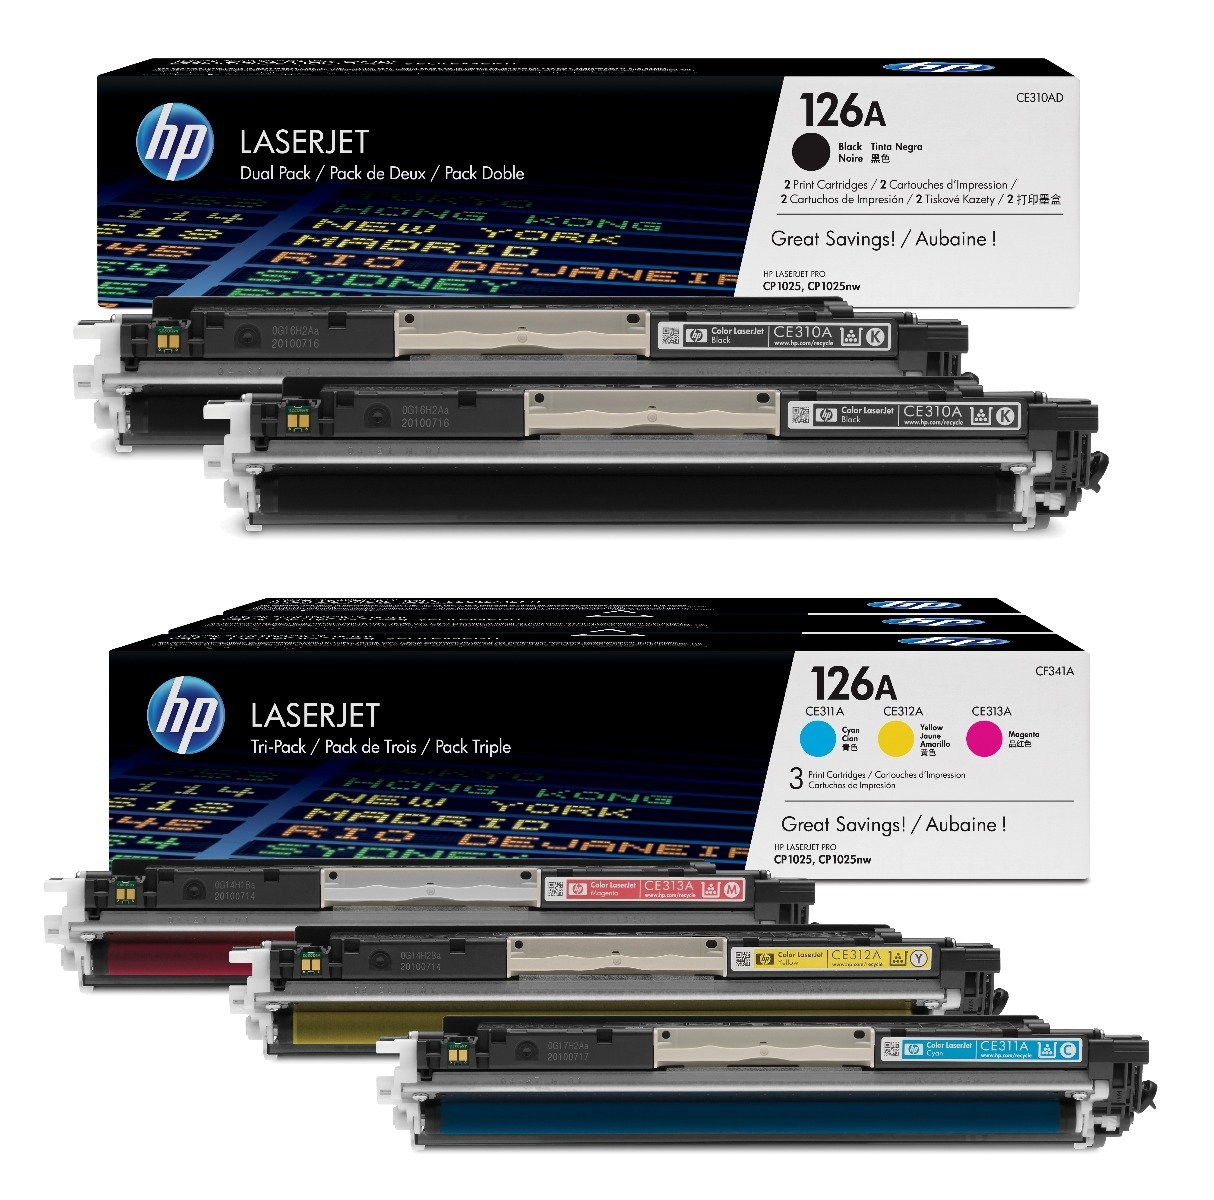 Genuine 5 Colour HP 126A Toner Cartridge Multipack - (CE310AD & CF341A)